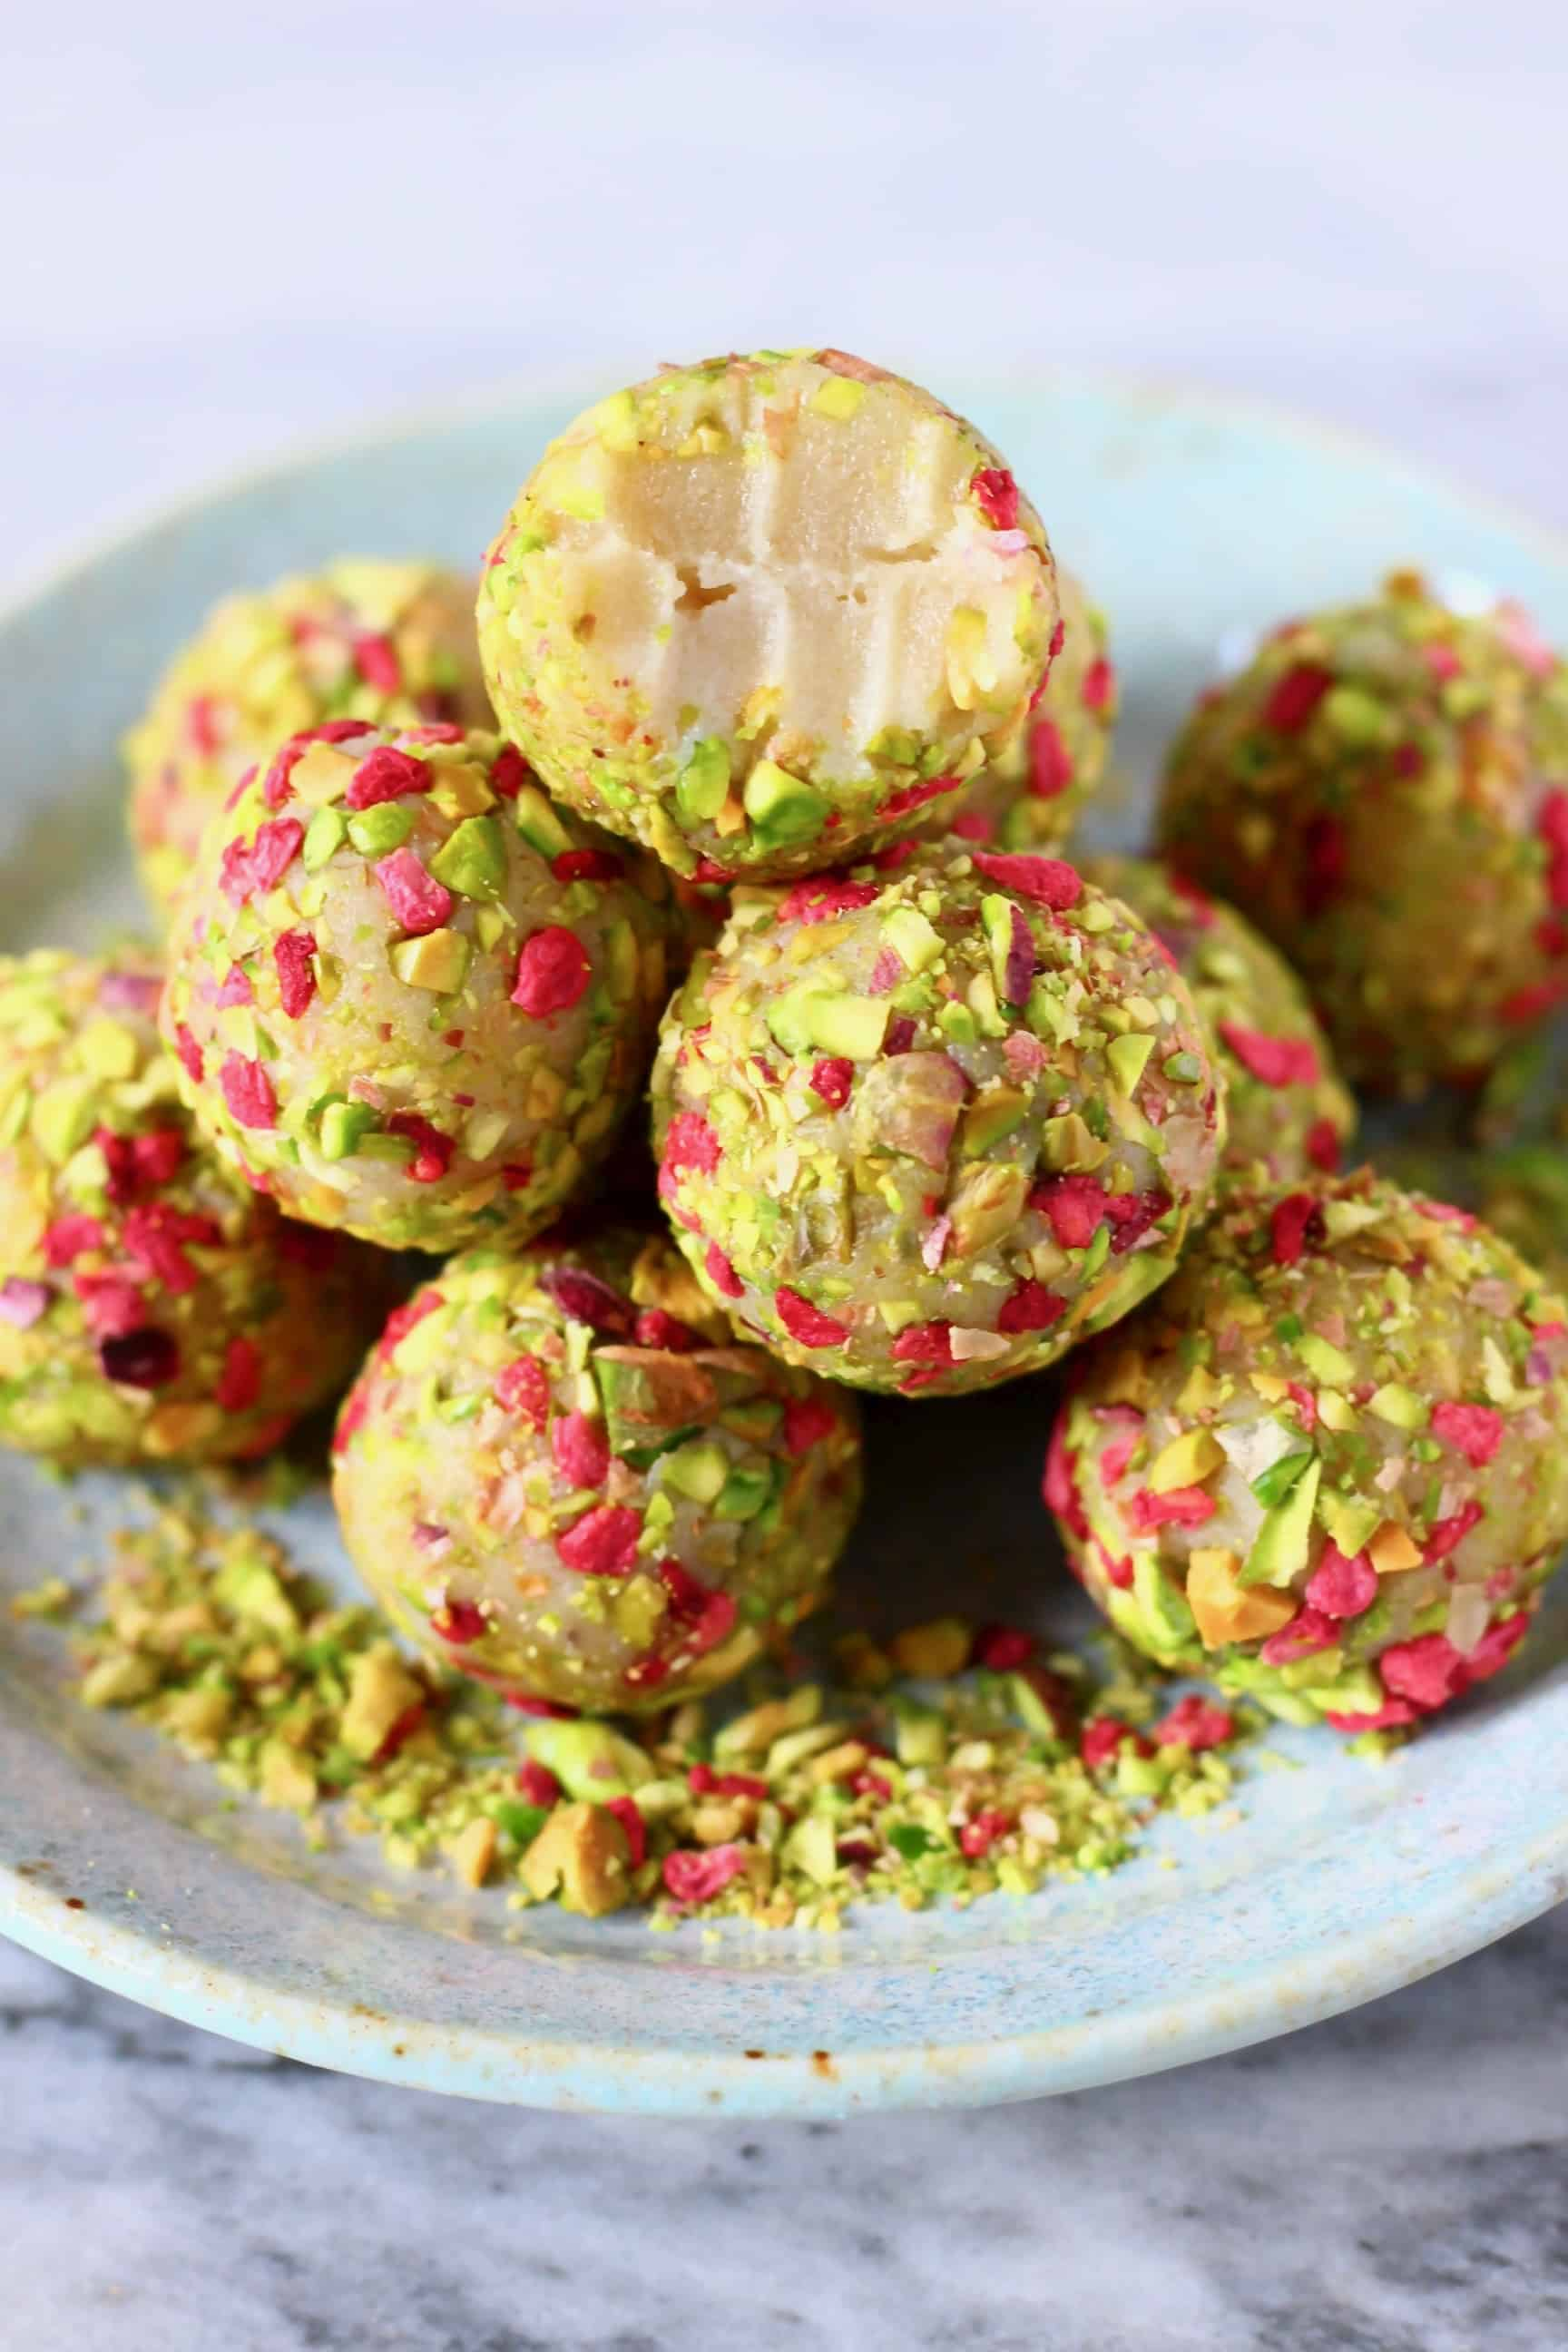 A pile of vegan white chocolate truffles covered in chopped pistachios and freeze-dried raspberries with a bitten one on top